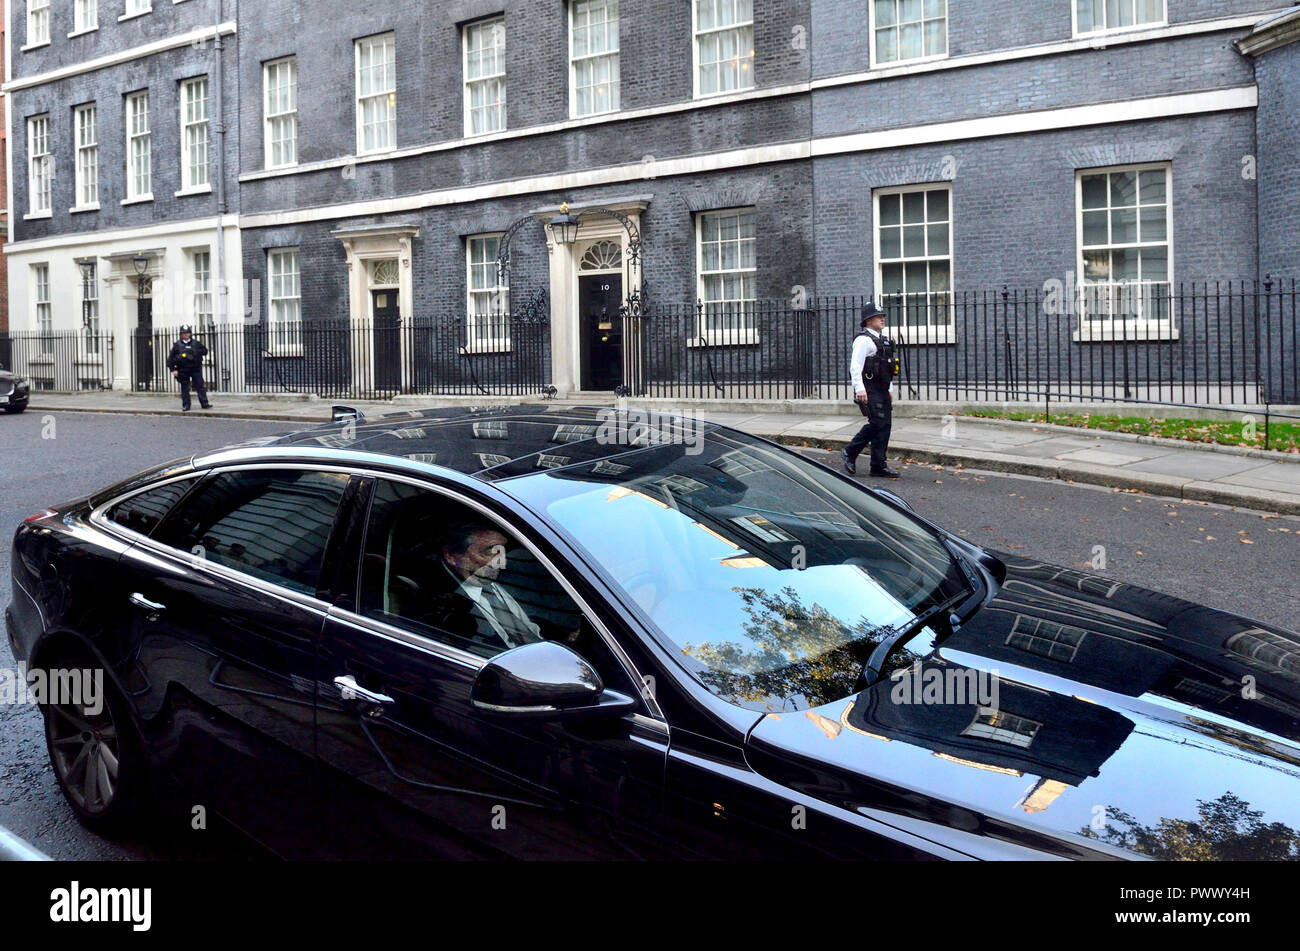 Ministerial car waiting in for the end of a lengthy cabinet meeting to discus Brexit, Downing Street 16th October 2018 - Stock Image